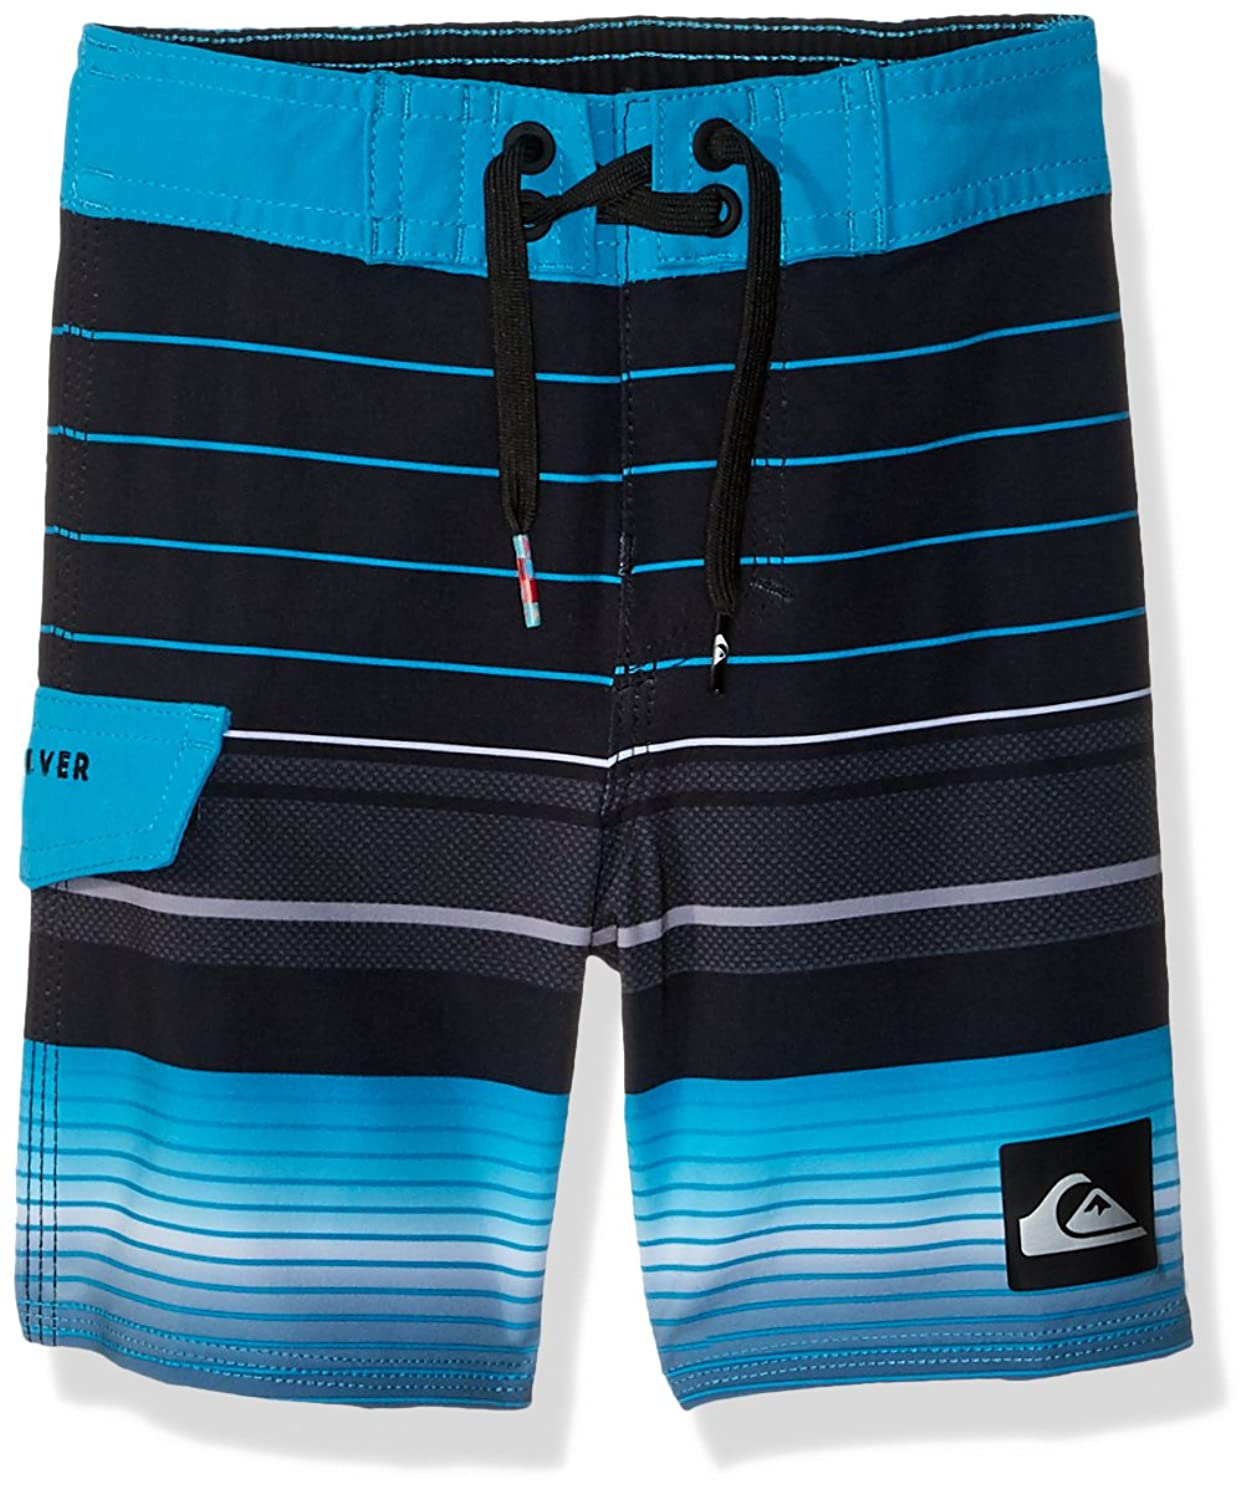 Quiksilver Boys Highline Swell Vision Youth 19 Black Boardshort Size 23-10S